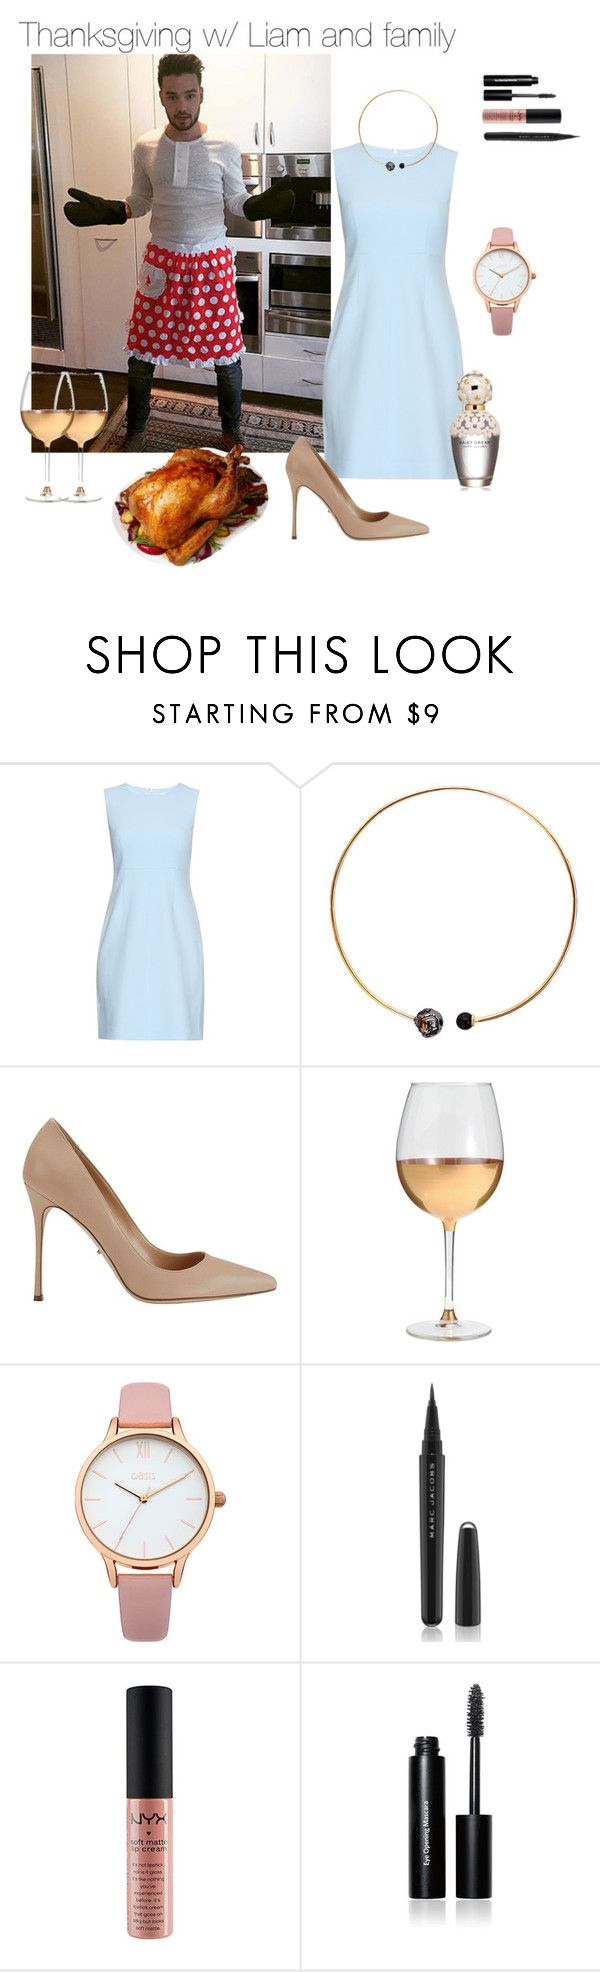 """Untitled #197"" by w3irdgirl ❤ liked on Polyvore featuring Payne, Diane Von Furstenberg, Artelier by Cristina Ramella, Sergio Rossi, Marc Blackwell, Oasis, Marc Jacobs, NYX, Bobbi Brown Cosmetics and women's clothing"